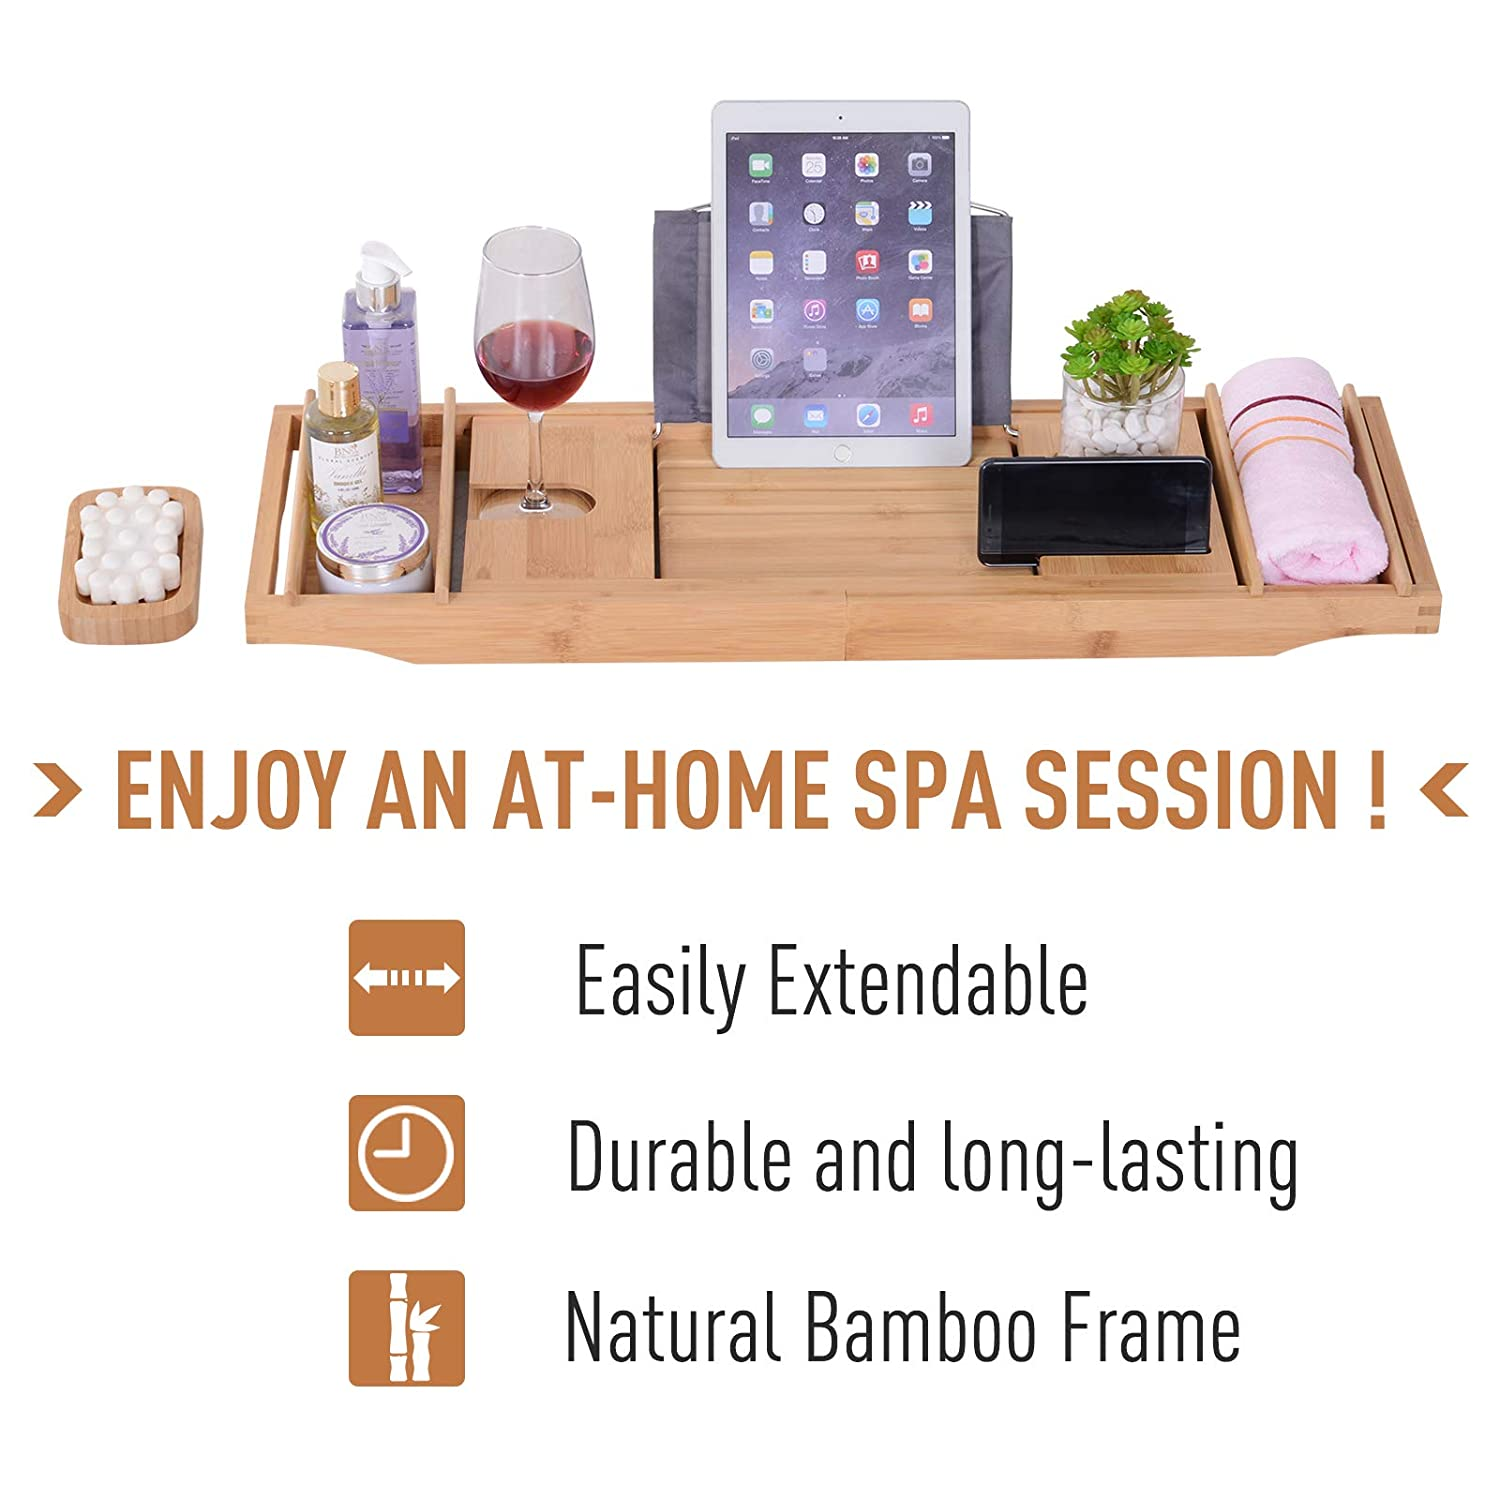 kleankin 42.5 Bamboo Bathtub Tray Bath Table Adjustable Caddy Tray with Extending Sides Cellphone Tray,Wineglass Holder and Additional Soap Holder Natural